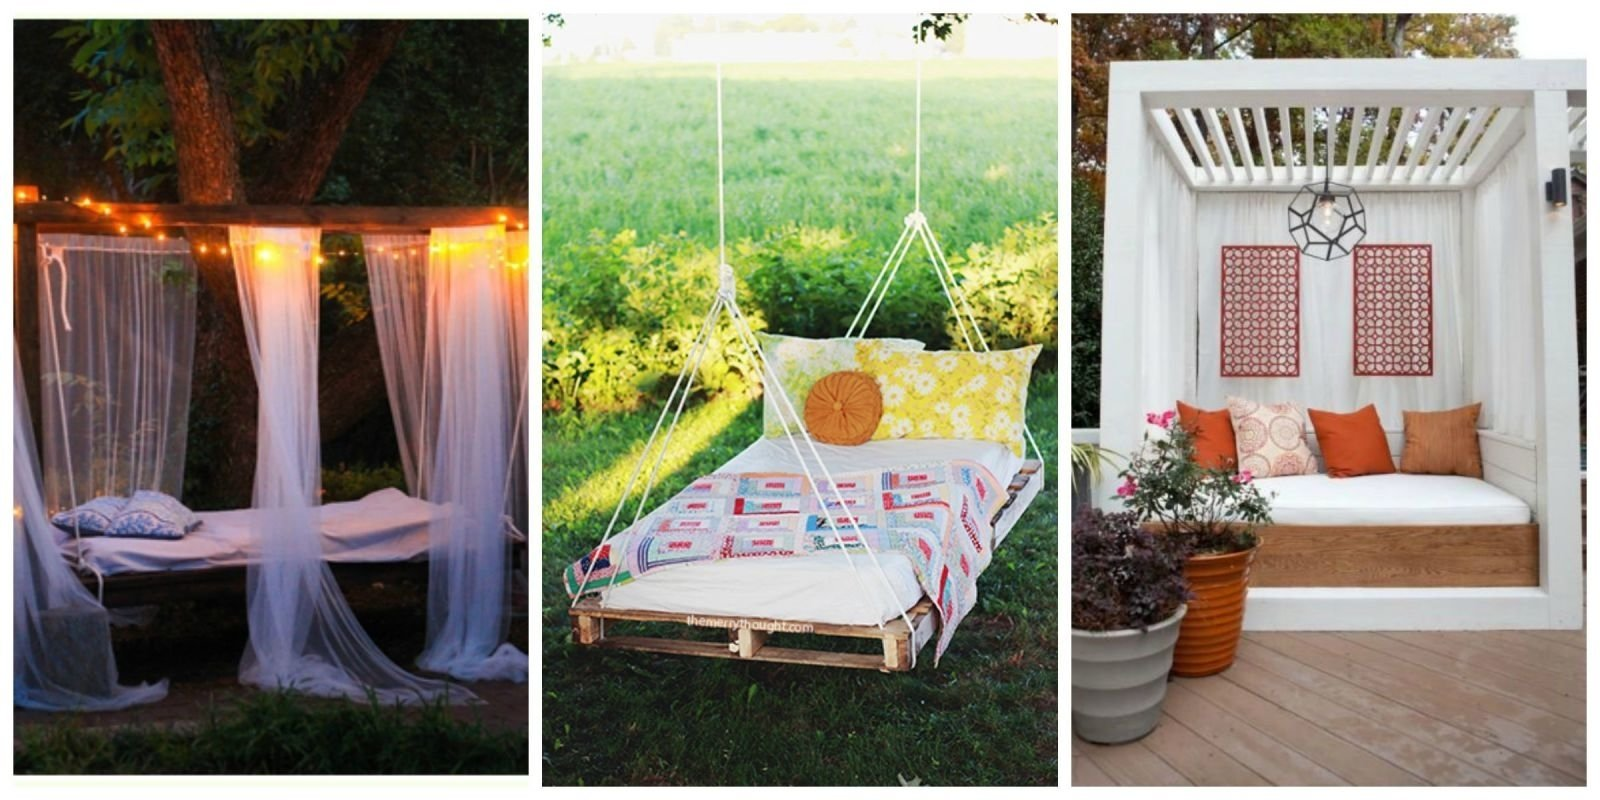 10 Stylish Outdoor Decorating Ideas For Summer outdoor bedrooms outdoor decorating outdoor summer decorating ideas 2020